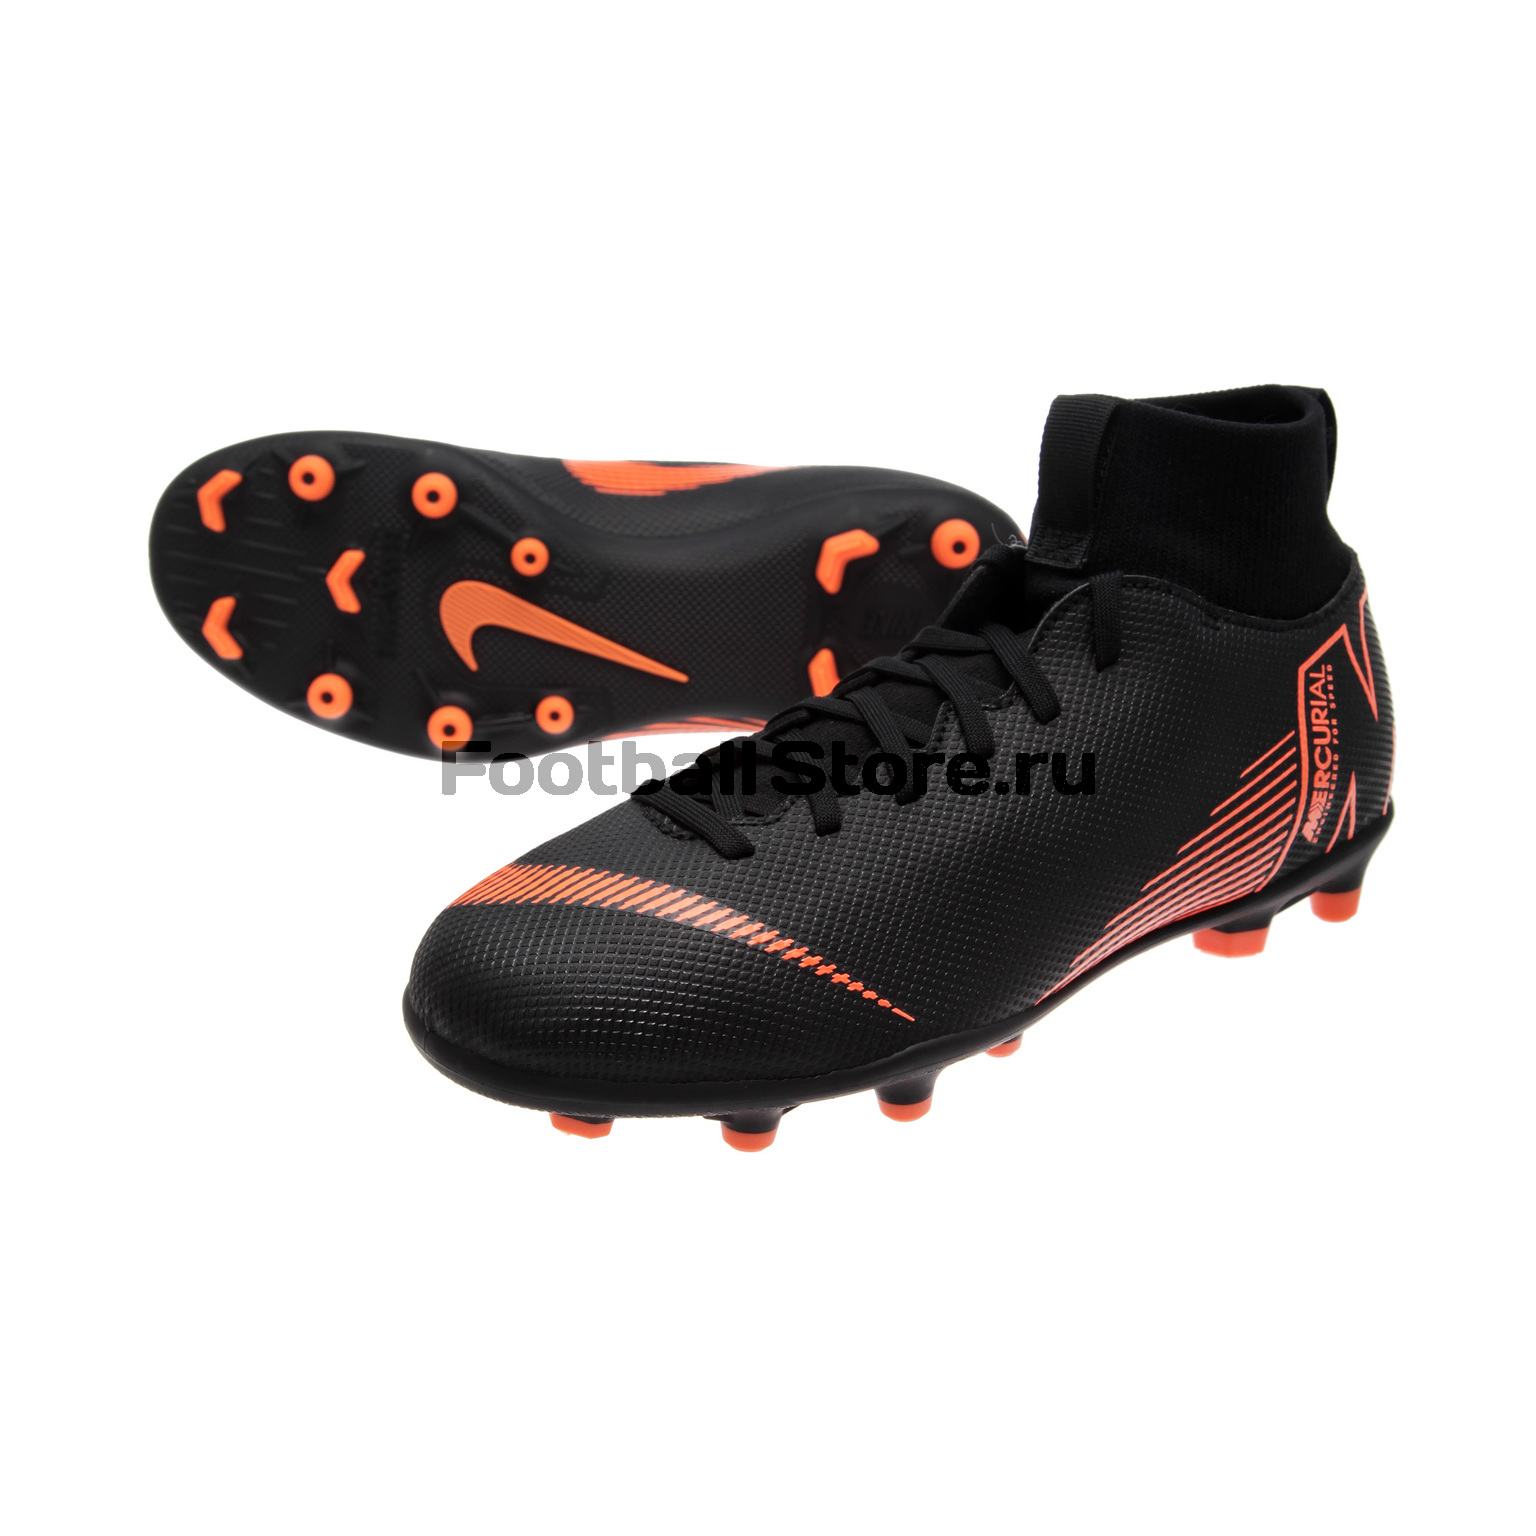 Бутсы Nike JR Superfly 6 Club FG/MG AH7339-081 бутсы nike шиповки nike jr tiempox legend vi tf 819191 018